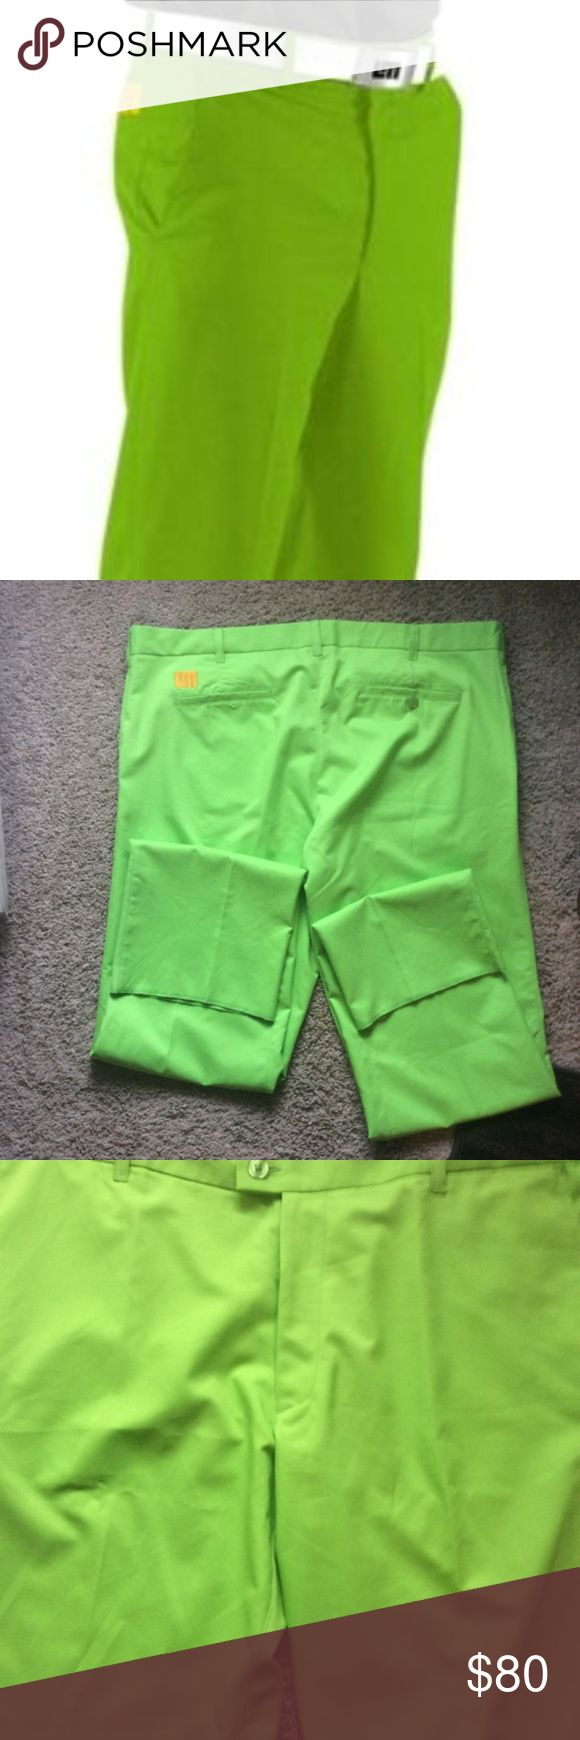 Electric Green Loudmouth Golf Pants by John Staley Wick Wear/Casual Fit, perfect for a hot day 42x34L No flaws or issues with pants, in excellent condition! Bundle and/or make an reasonable offer to save big!! :) Pants